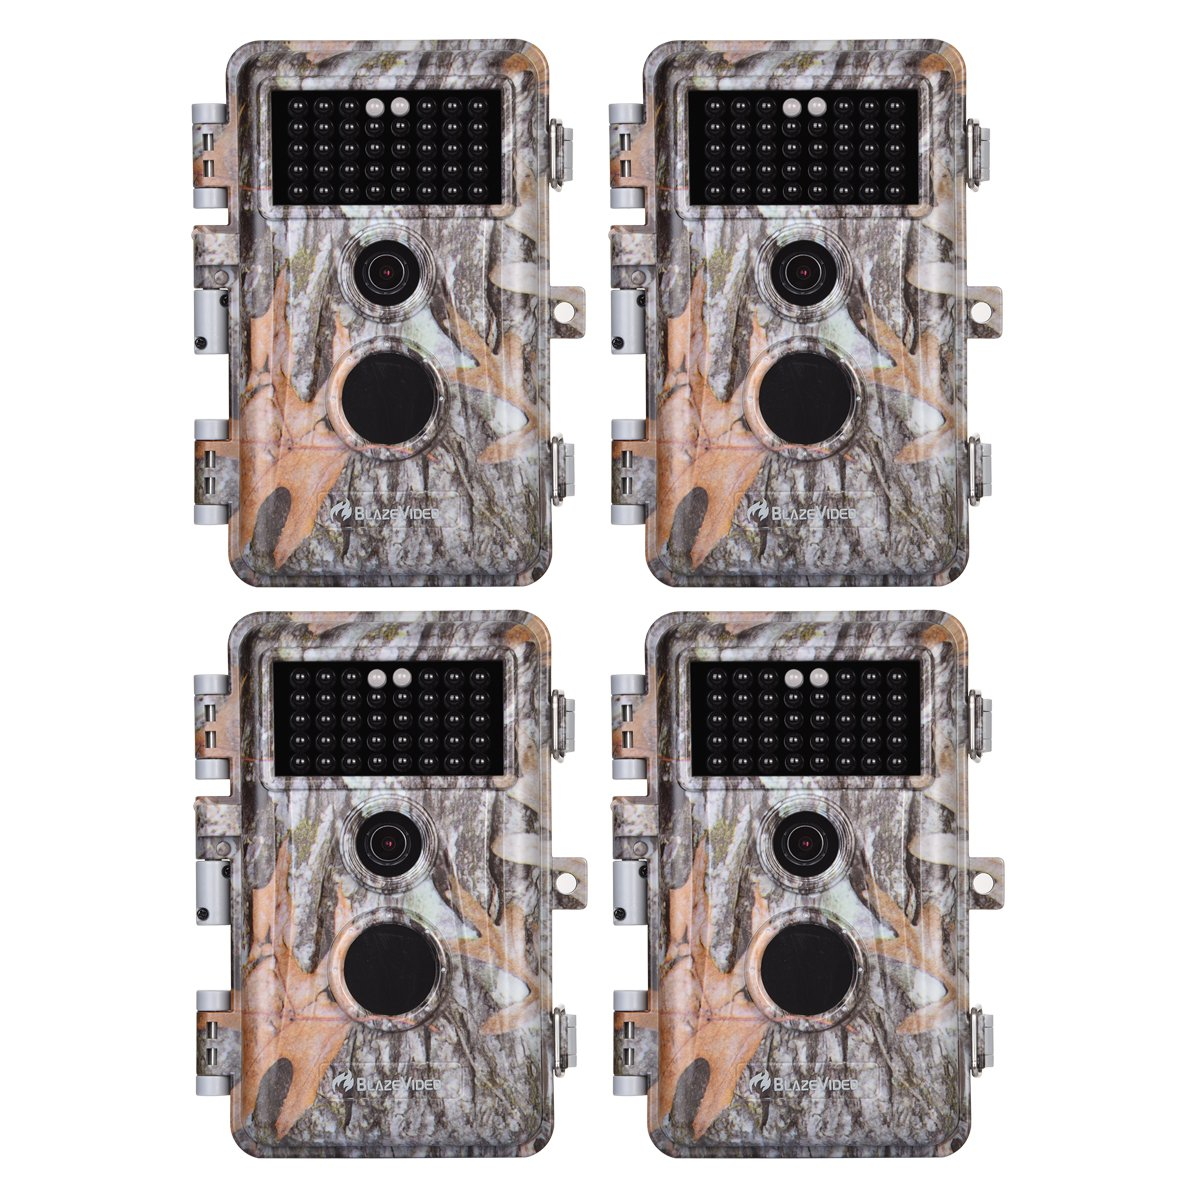 4-Pack Game Trail Deer Cameras 16MP 1080P for Hunting Wildlife No Glow Infrared Night Vision Time Lapse Motion Activated IP66 Waterproof Password Protected, Photo Video Model, 2.4 LCD, Time Stamp